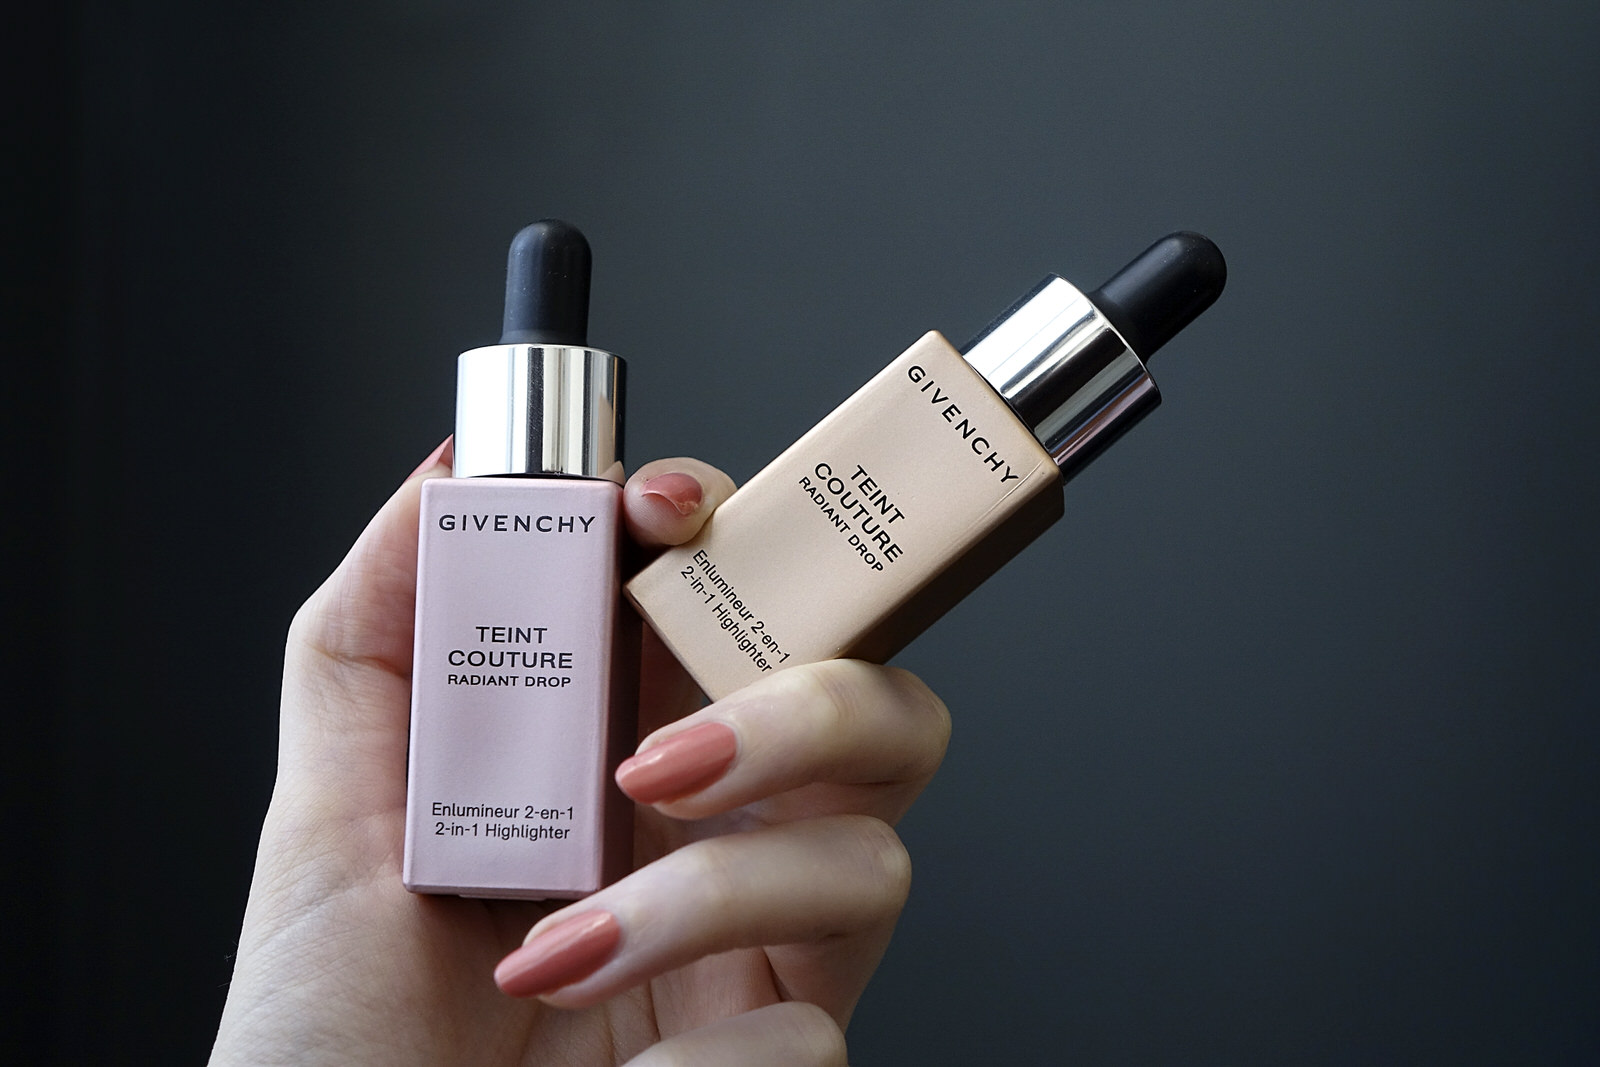 givenchy, enlumineur, teint couture, radiant drop, highlighter liquide, beauté, beauty, makeup, maquillage